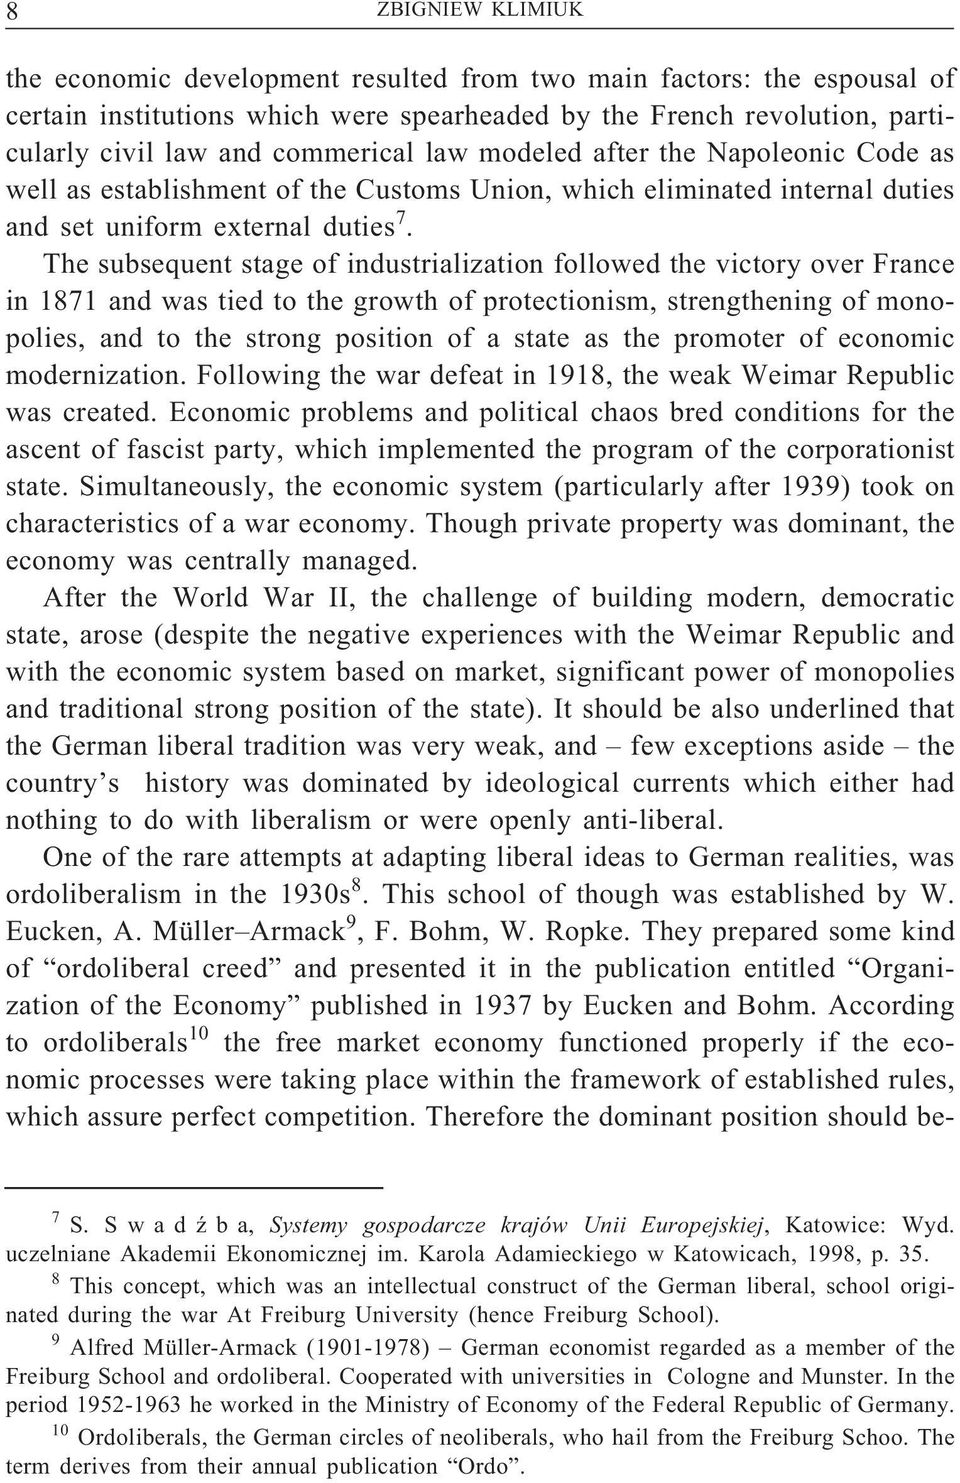 The subsequent stage of industrialization followed the victory over France in 1871 and was tied to the growth of protectionism, strengthening of monopolies, and to the strong position of a state as